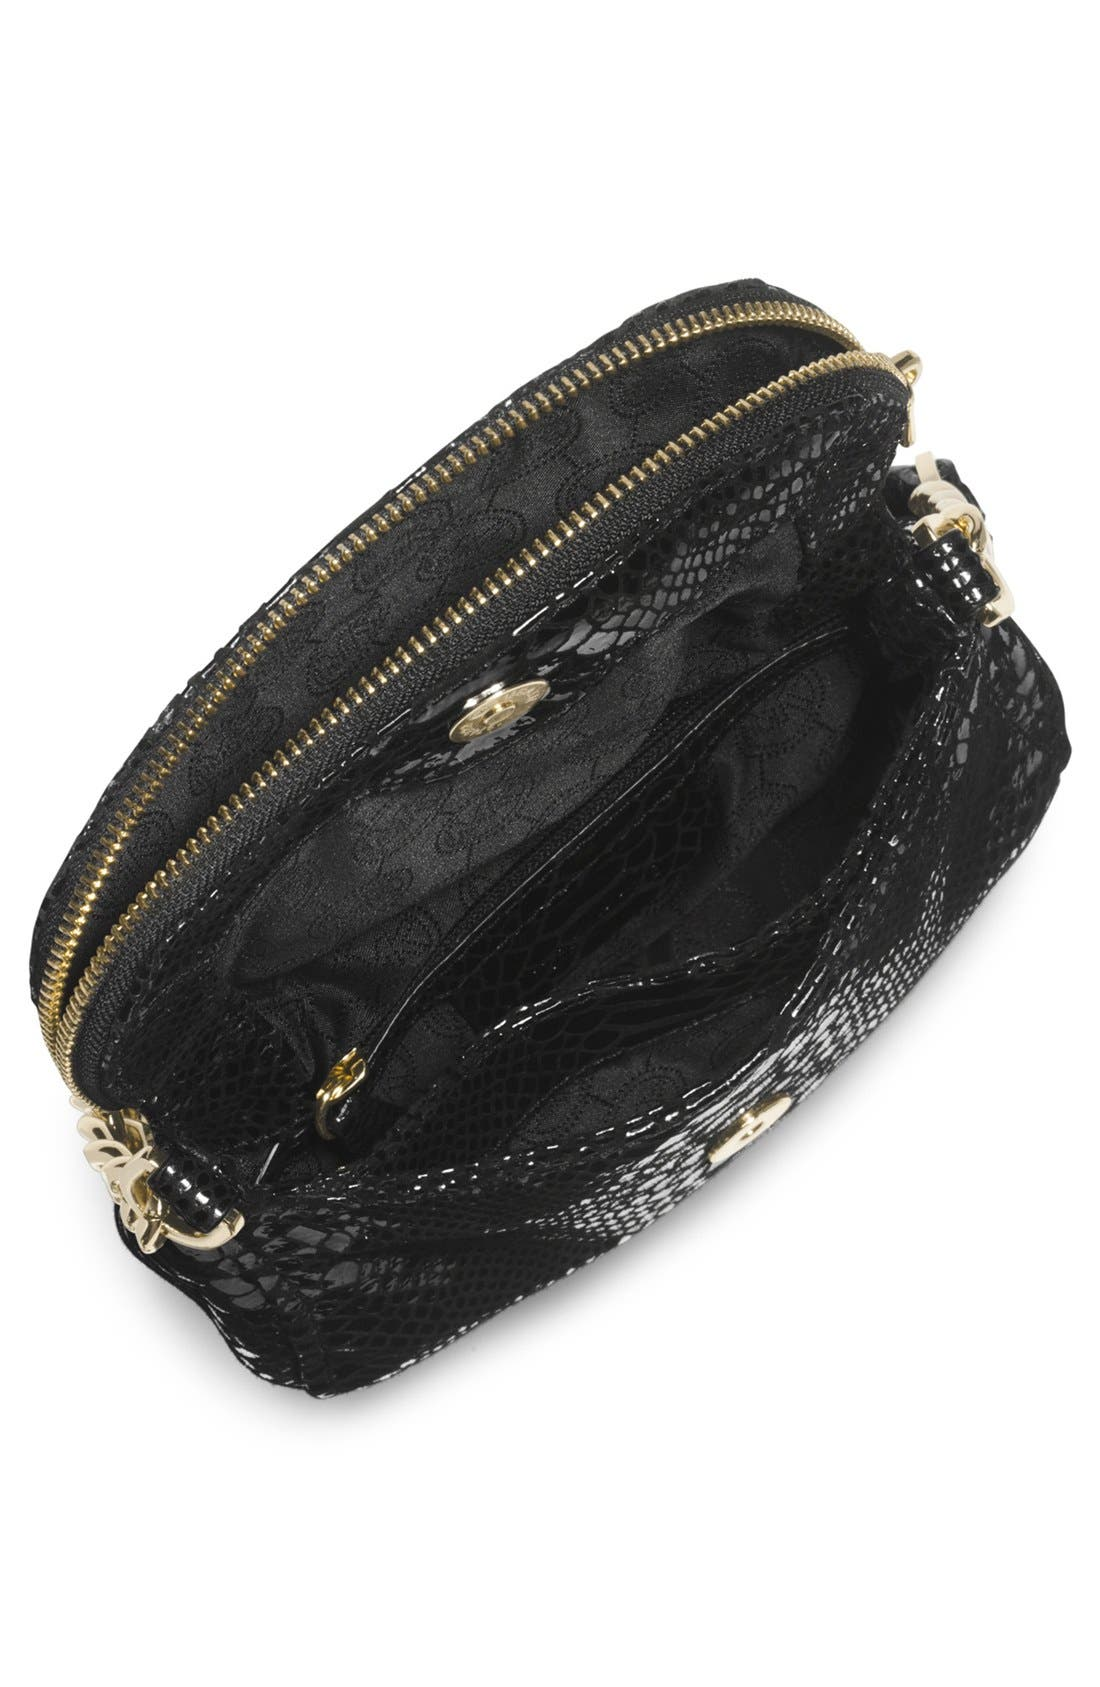 Alternate Image 2  - MICHAEL Michael Kors 'Bedford' Python Embossed Leather Crossbody Bag